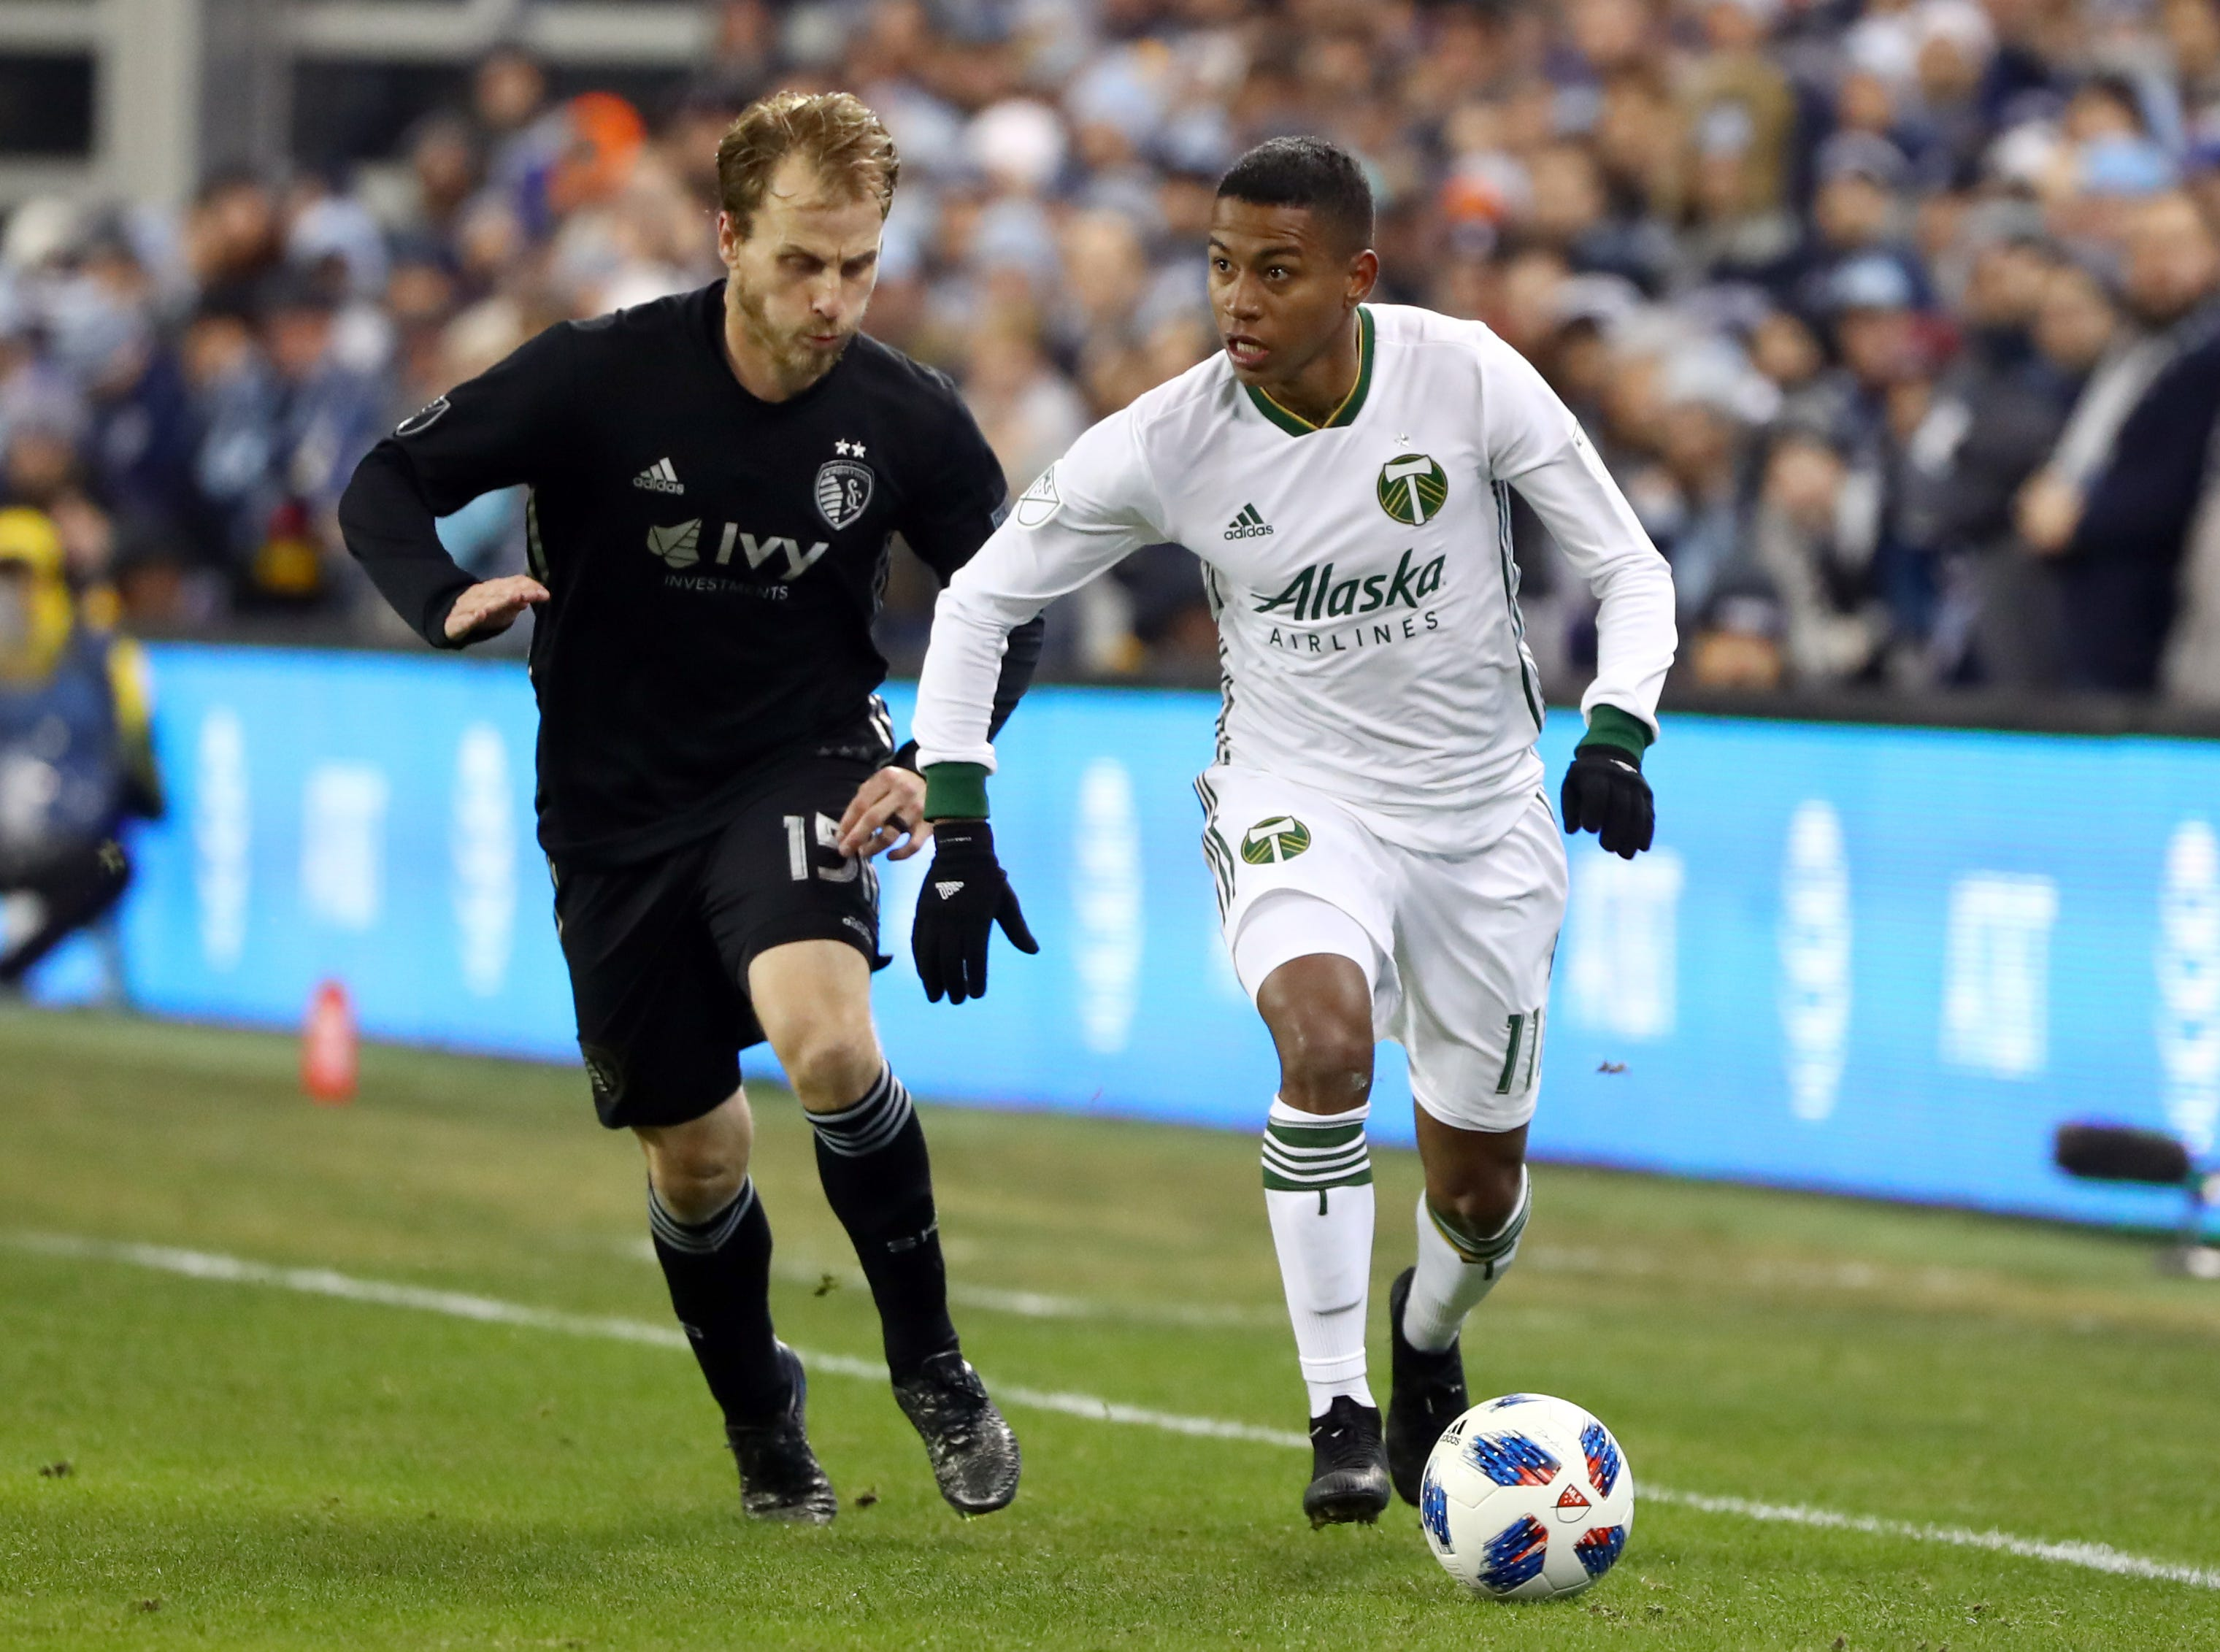 Nov 29, 2018; Kansas City, KS, USA; Portland Timbers forward Andy Polo (11) dribbles the ball against Sporting Kansas City defender Seth Sinovic (15) during the second half in the second leg of the MLS Western Conference Championship at Children's Mercy Park. Mandatory Credit: Jay Biggerstaff-USA TODAY Sports